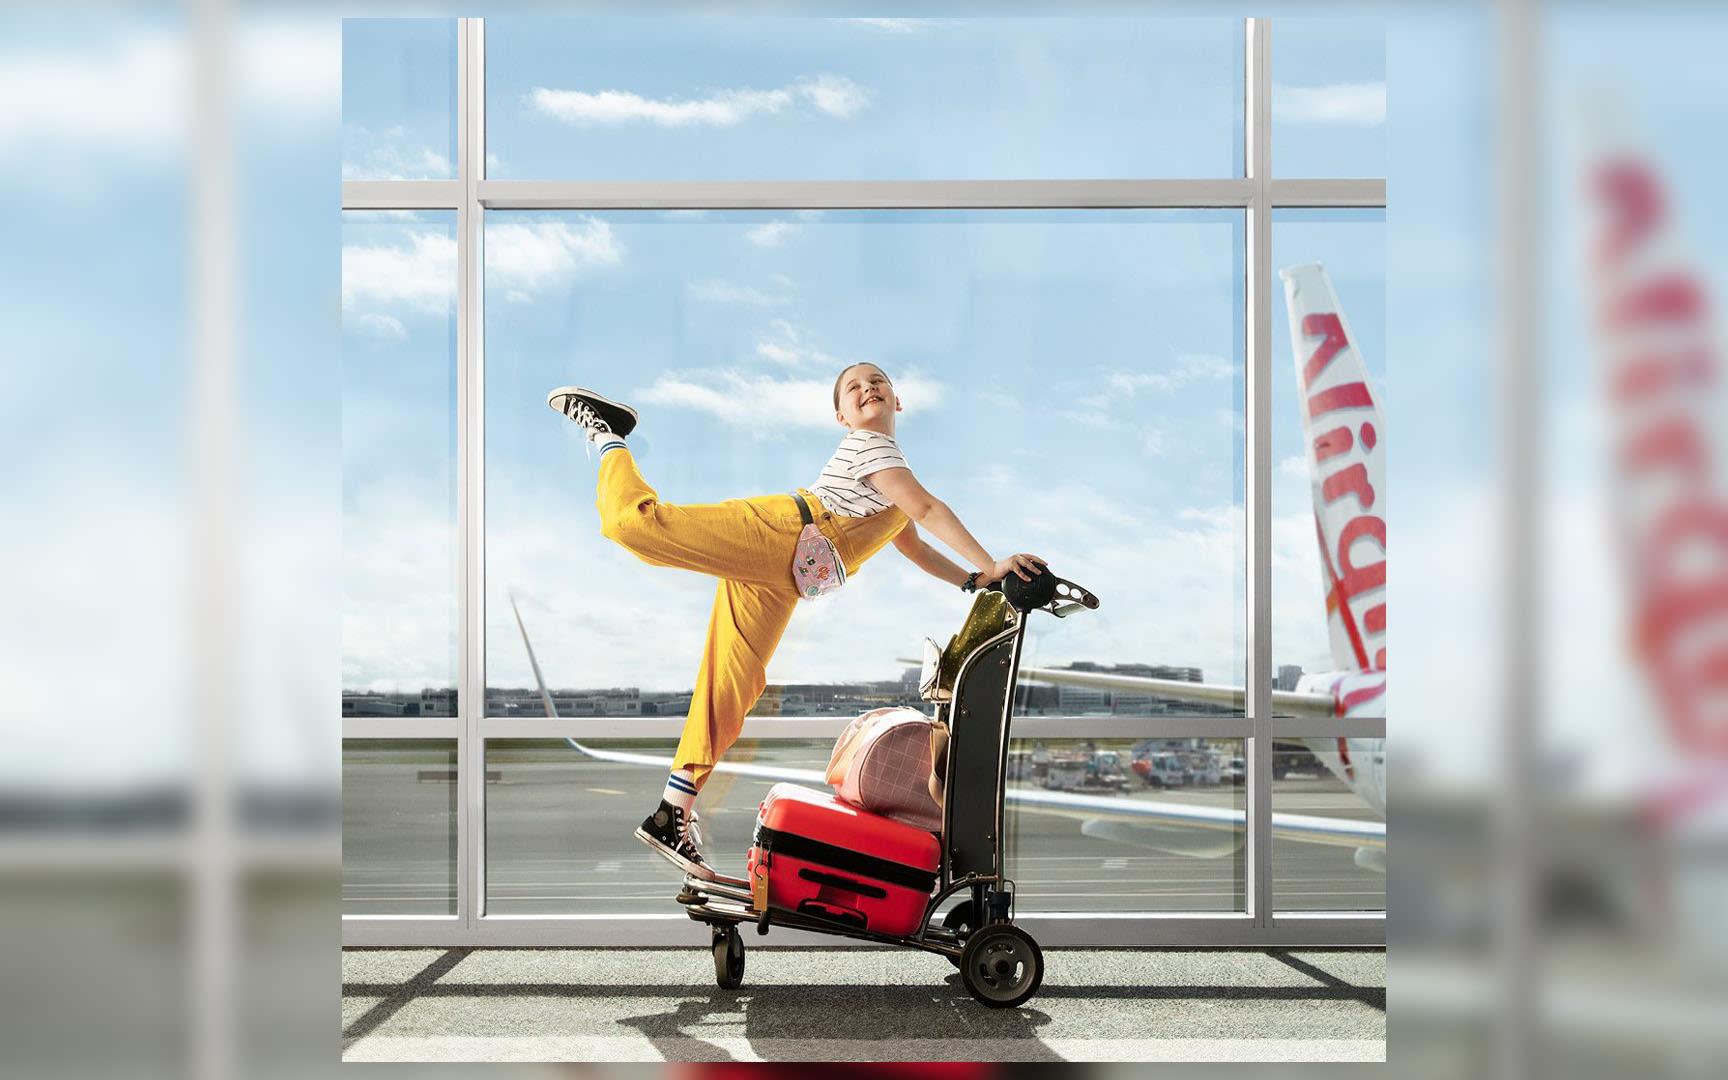 A girl in a yellow jumpsuit dances on a luggage trolley